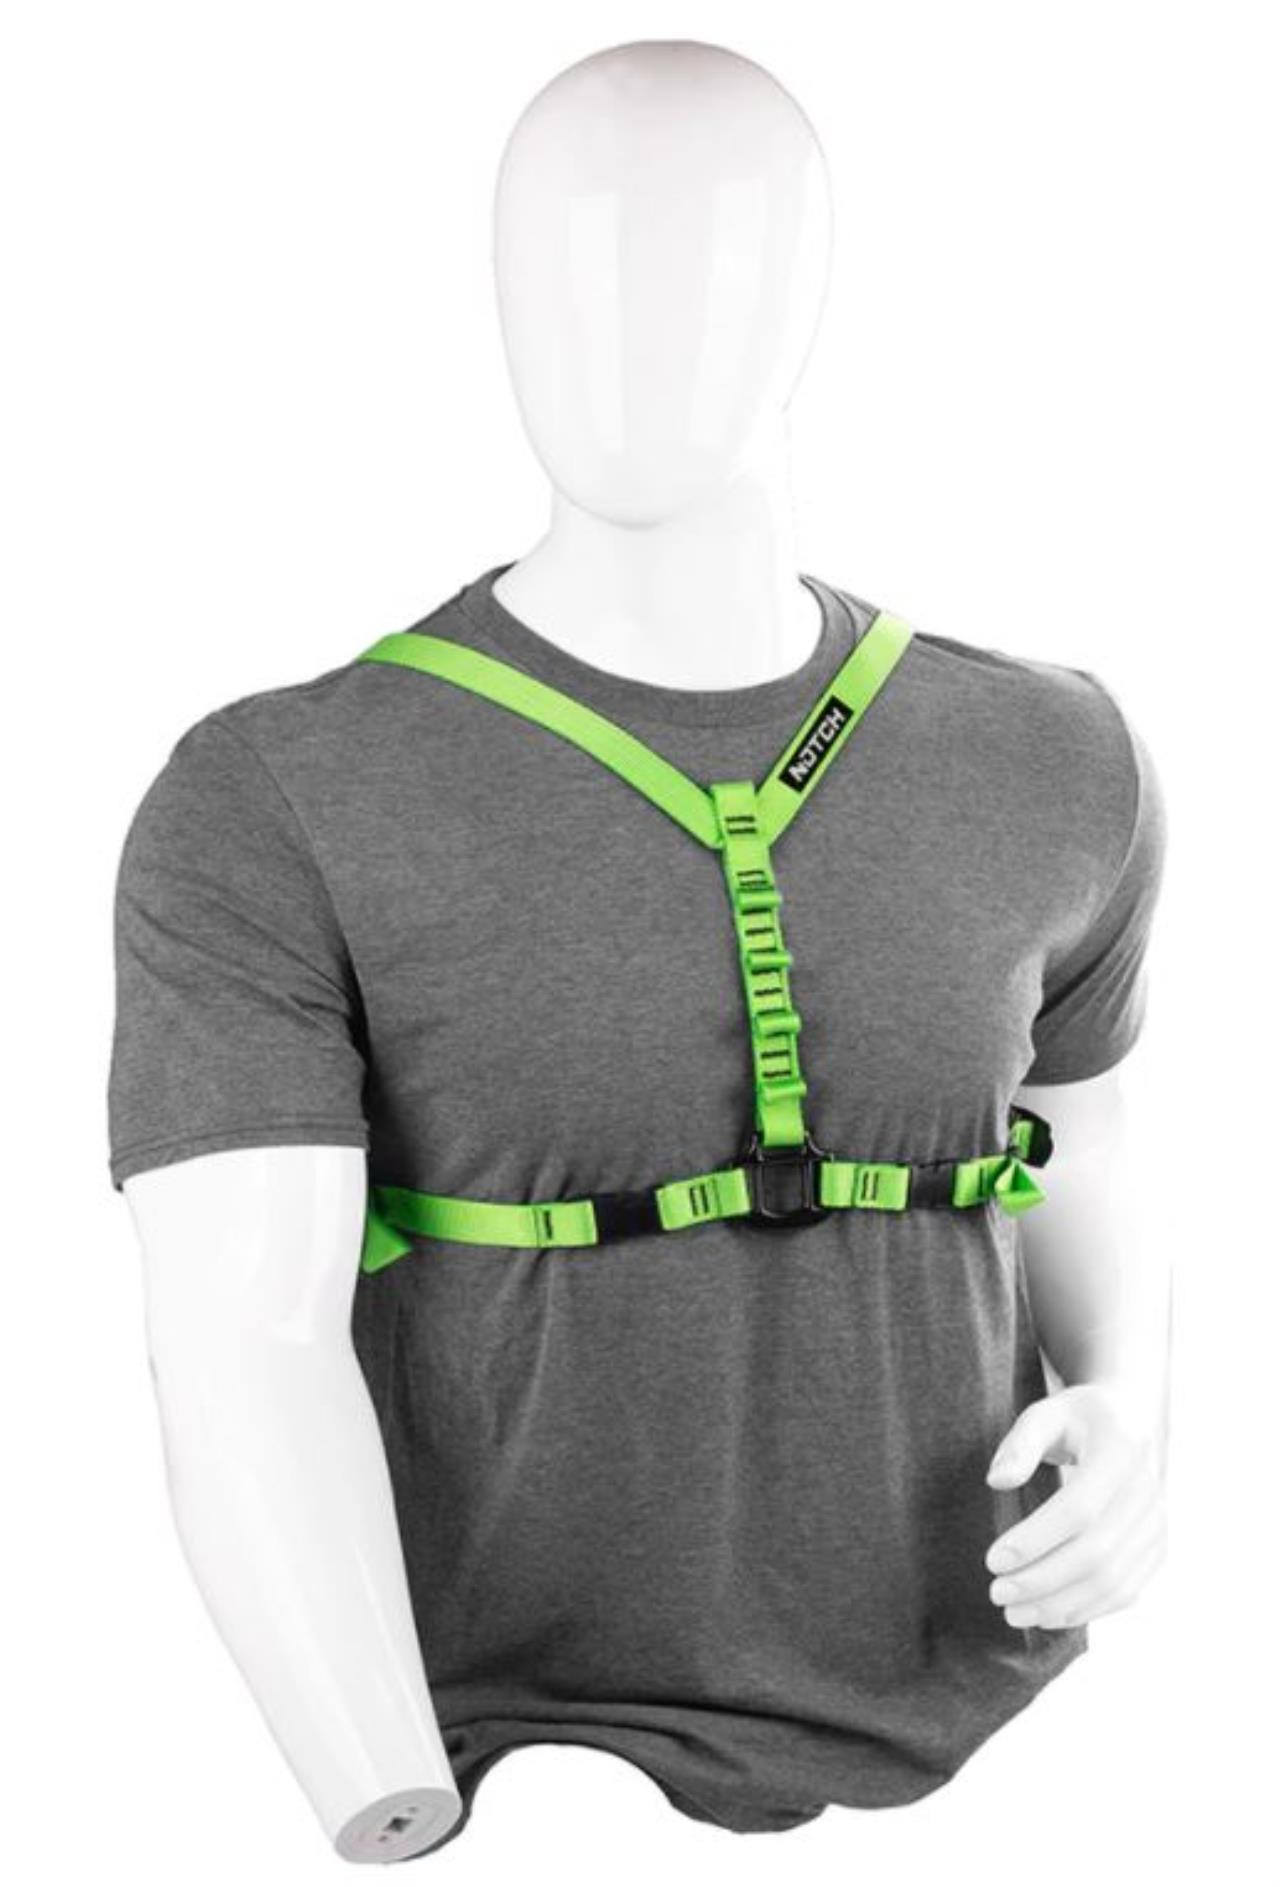 NOTCH SRS CHEST HARNESS